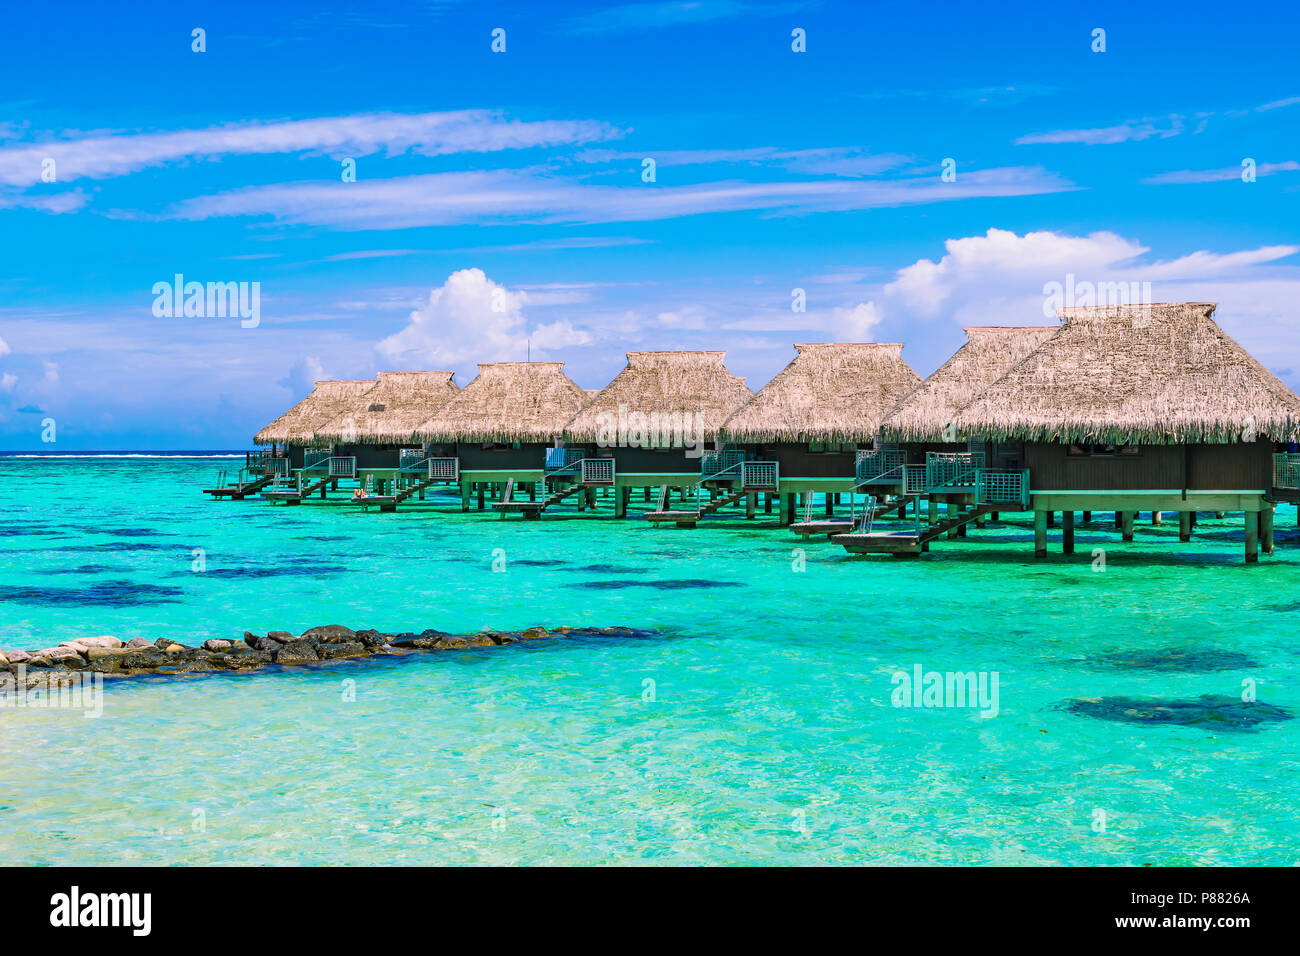 Luxury beach travel vacation concept: Overwater bungalows on turquoise coral reef lagoon ocean close to the beach. - Stock Image